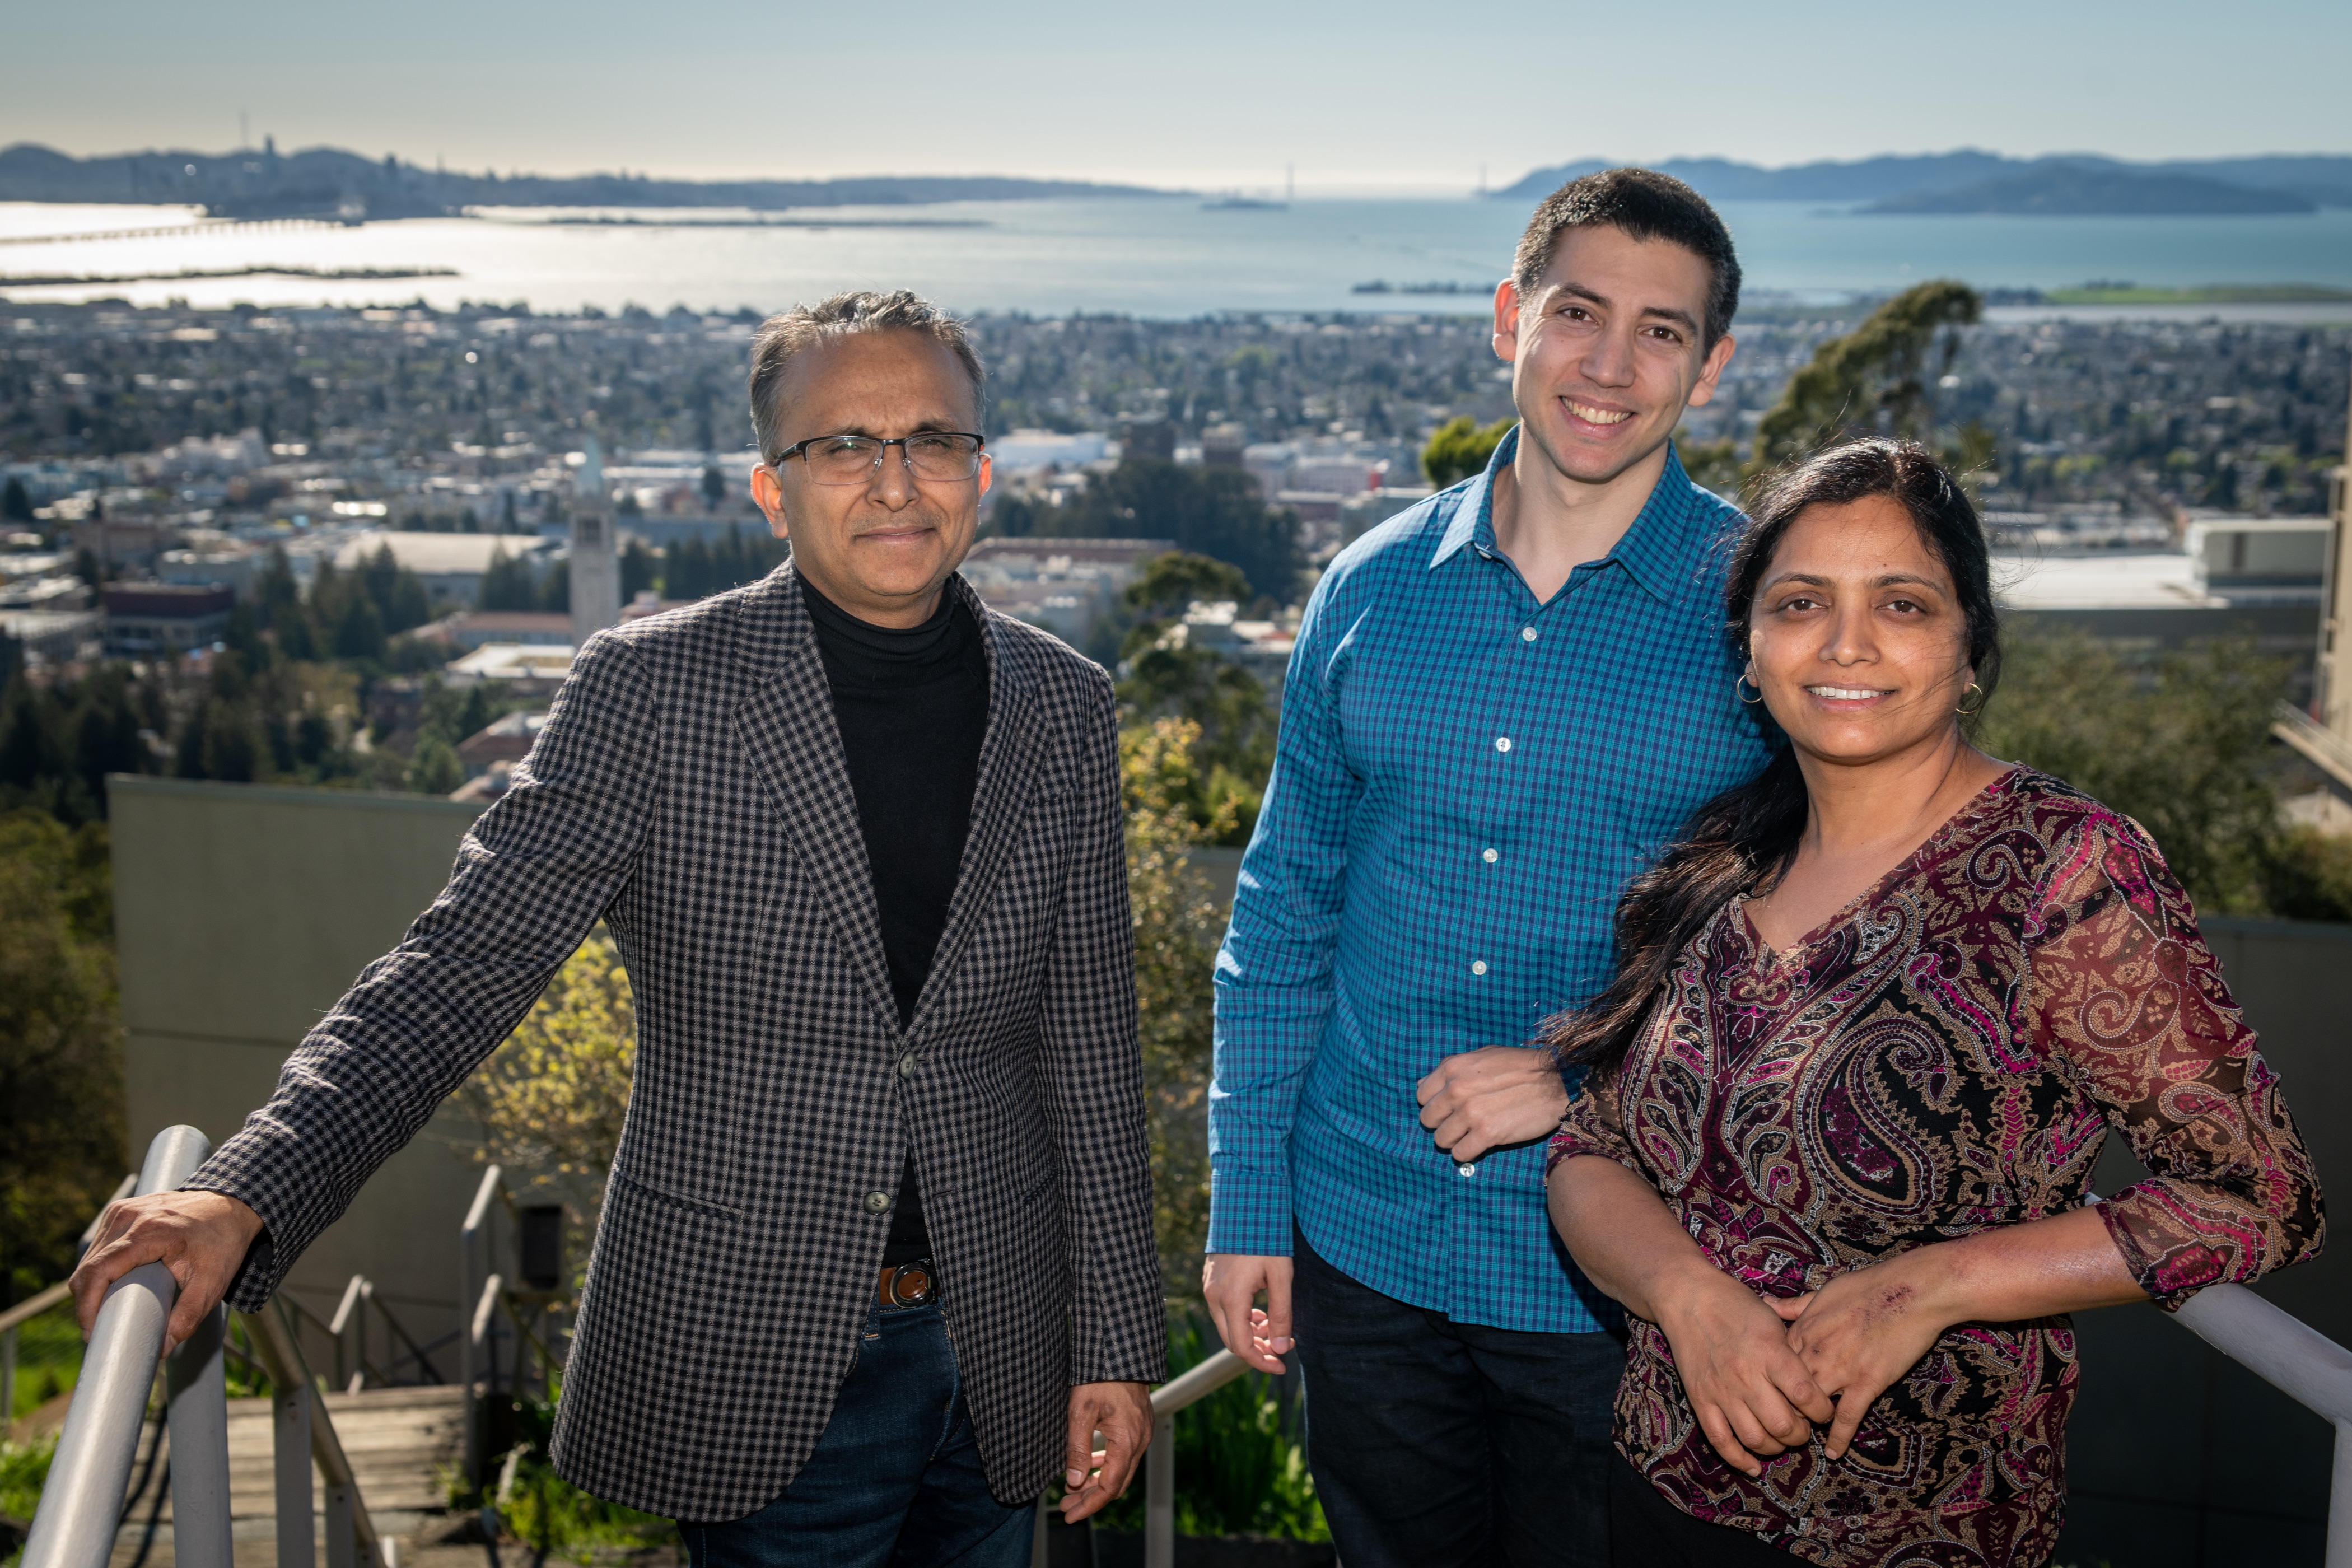 Themal Energy Group's Principal Investigators: from left to right, Senior Scientist Ravi Prasher, Research Scientist Sean Lubner and Group Leader Sumanjeet Kaur who leads the group of 28 researchers.